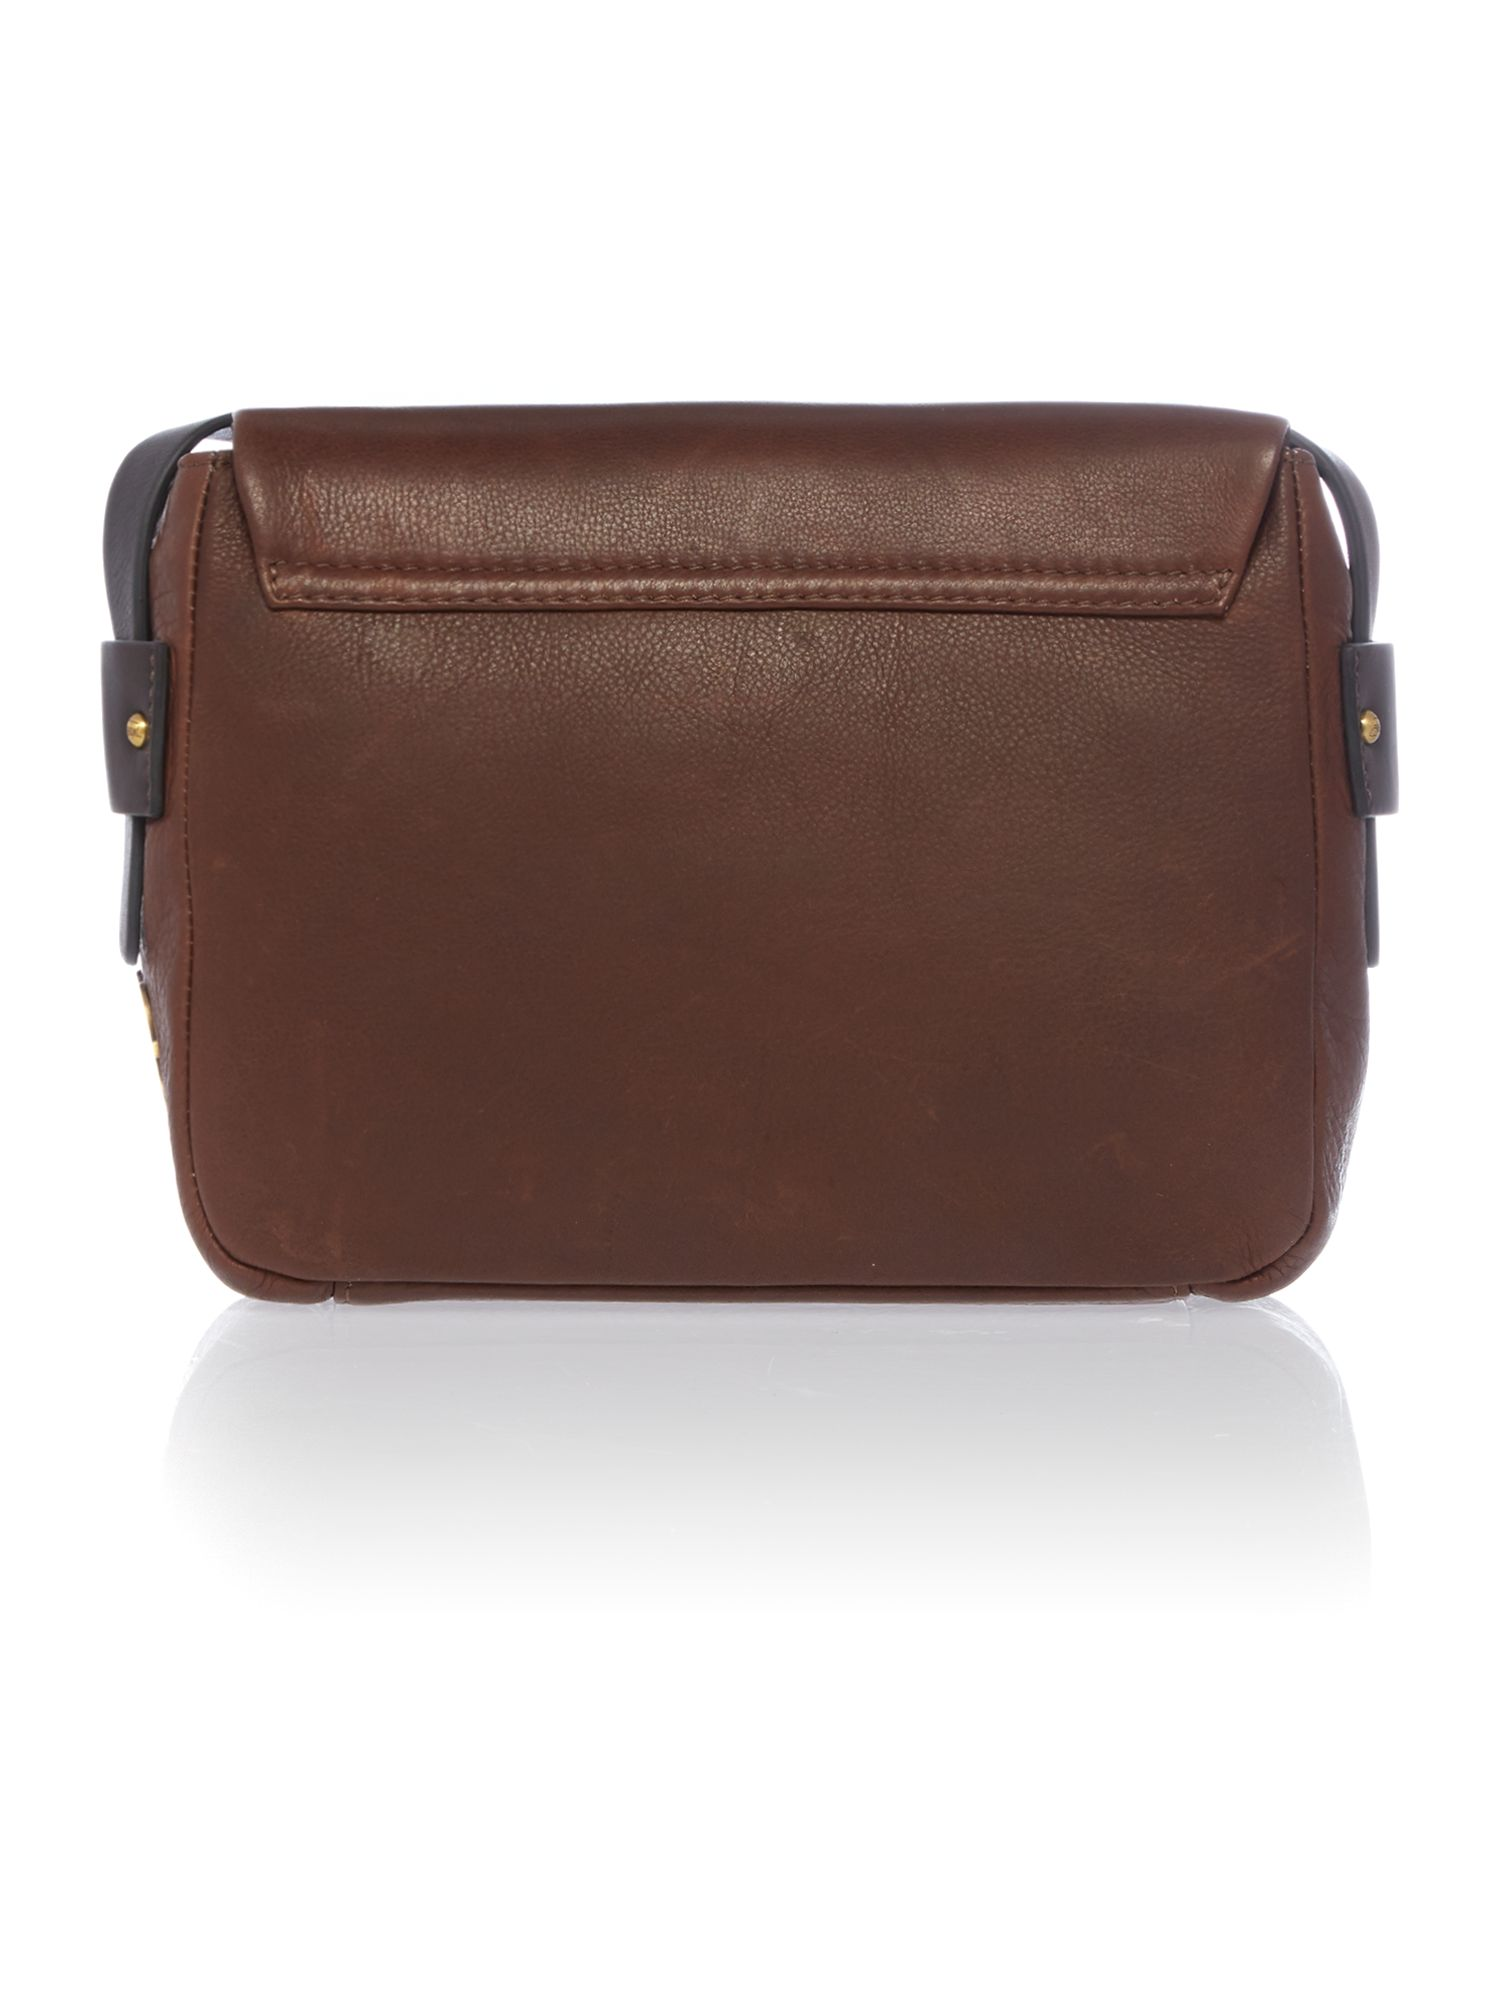 Ickford tan satchel bag